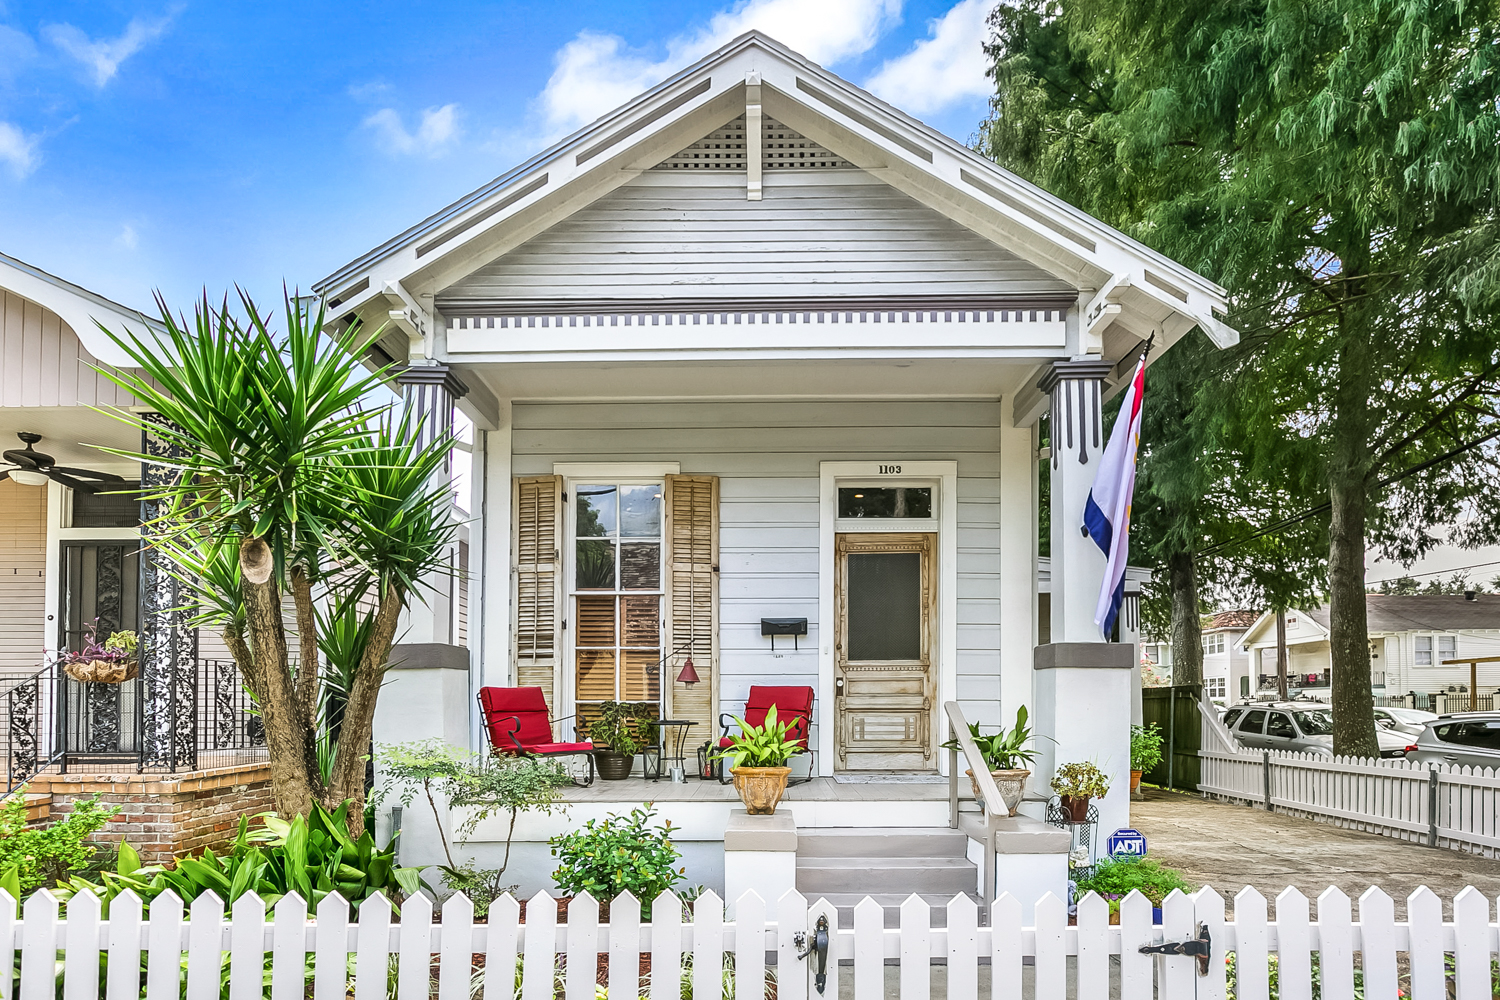 Great Charming 3 bed/ 2 bath house one block away from Oak St. with lots of restaurants, coffee shops, music, grocery store and much more. Parking! Yard!